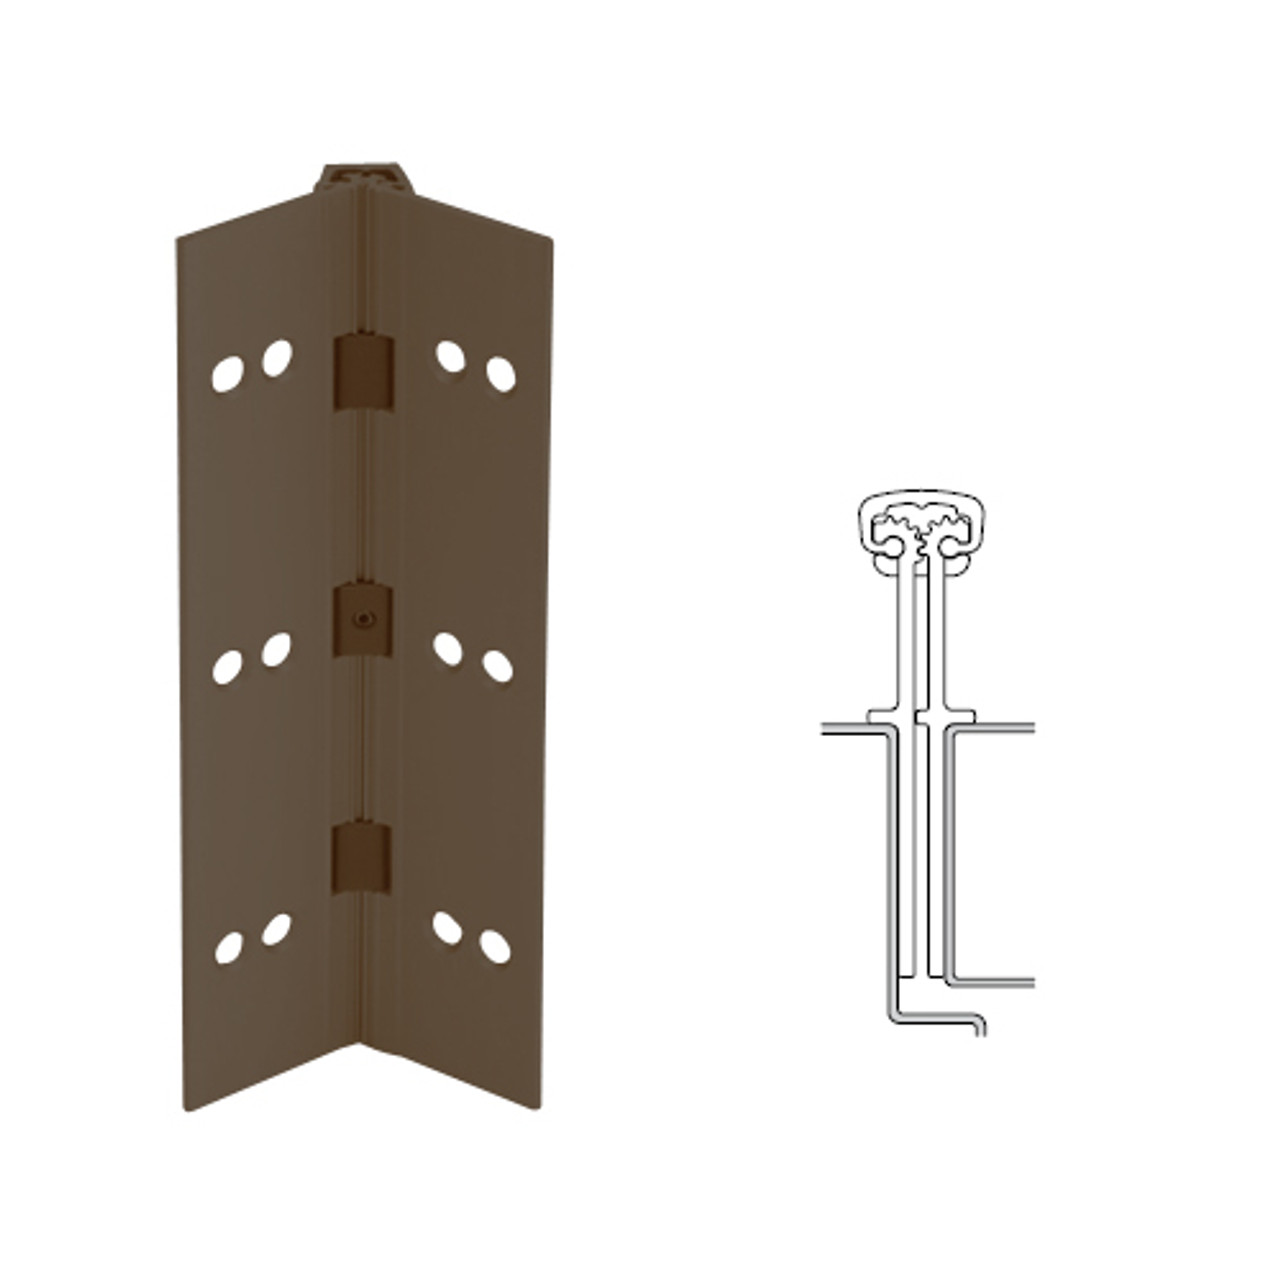 040XY-313AN-95-TEKWD IVES Full Mortise Continuous Geared Hinges with Wood Screws in Dark Bronze Anodized